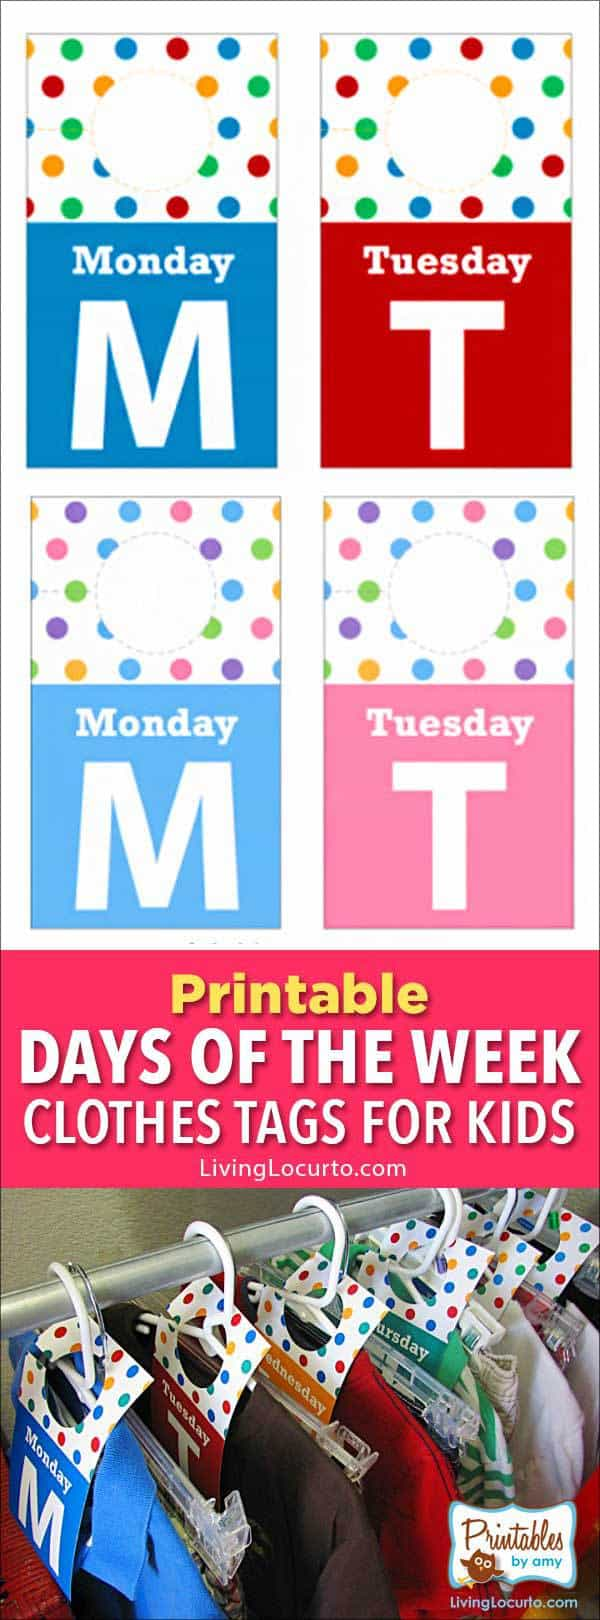 Days of the week closet tags to get kids organized for back to school.